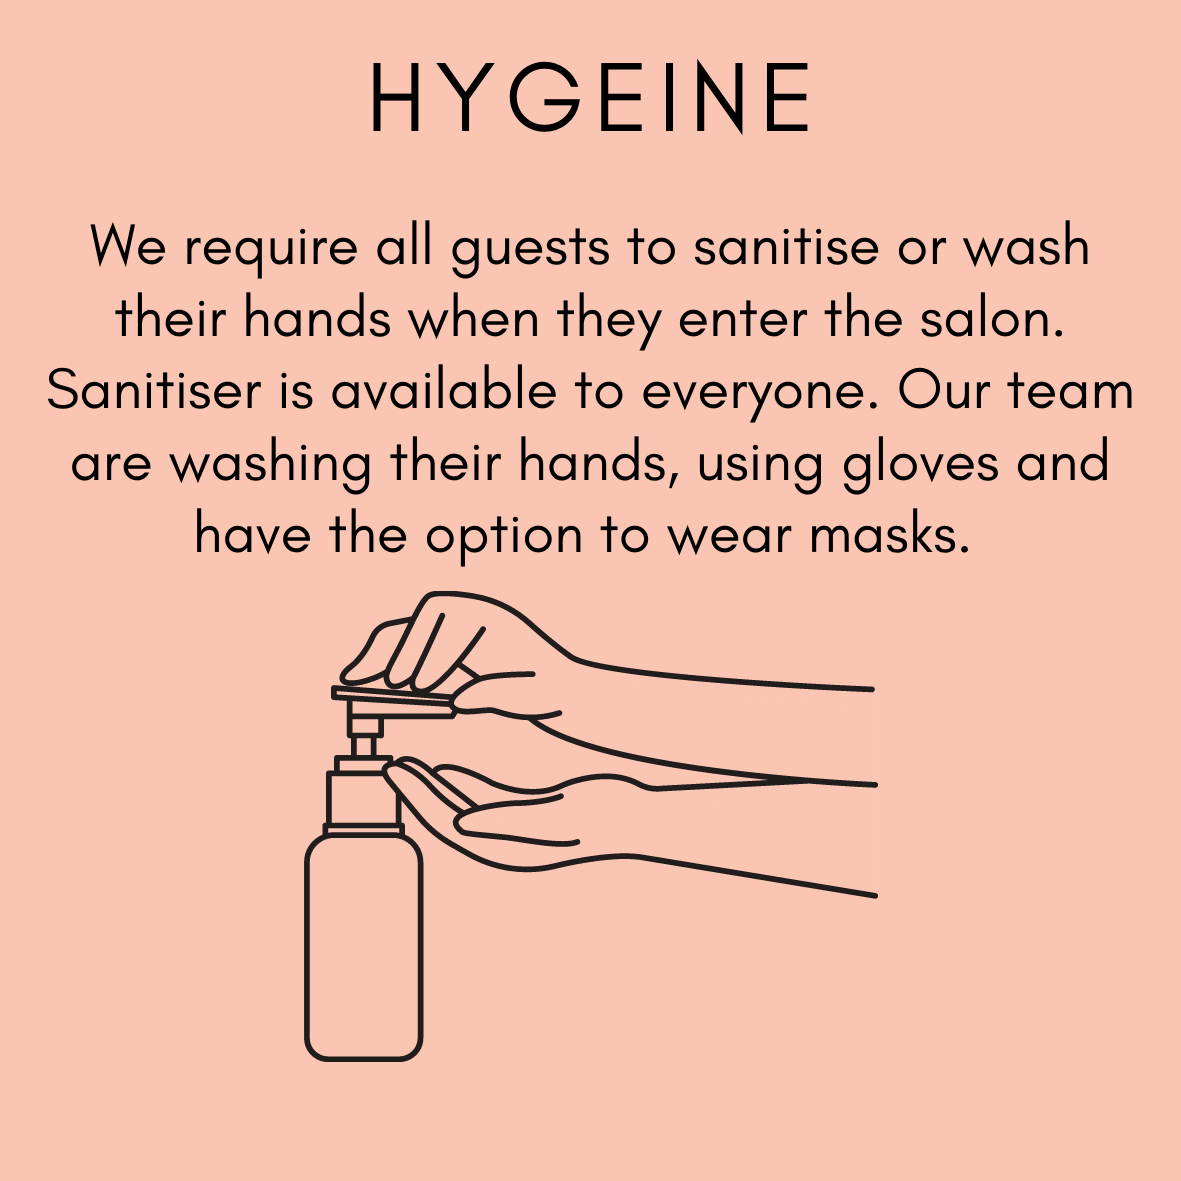 Zucci Hairdressing is committed to hand hygiene in all our salon locations